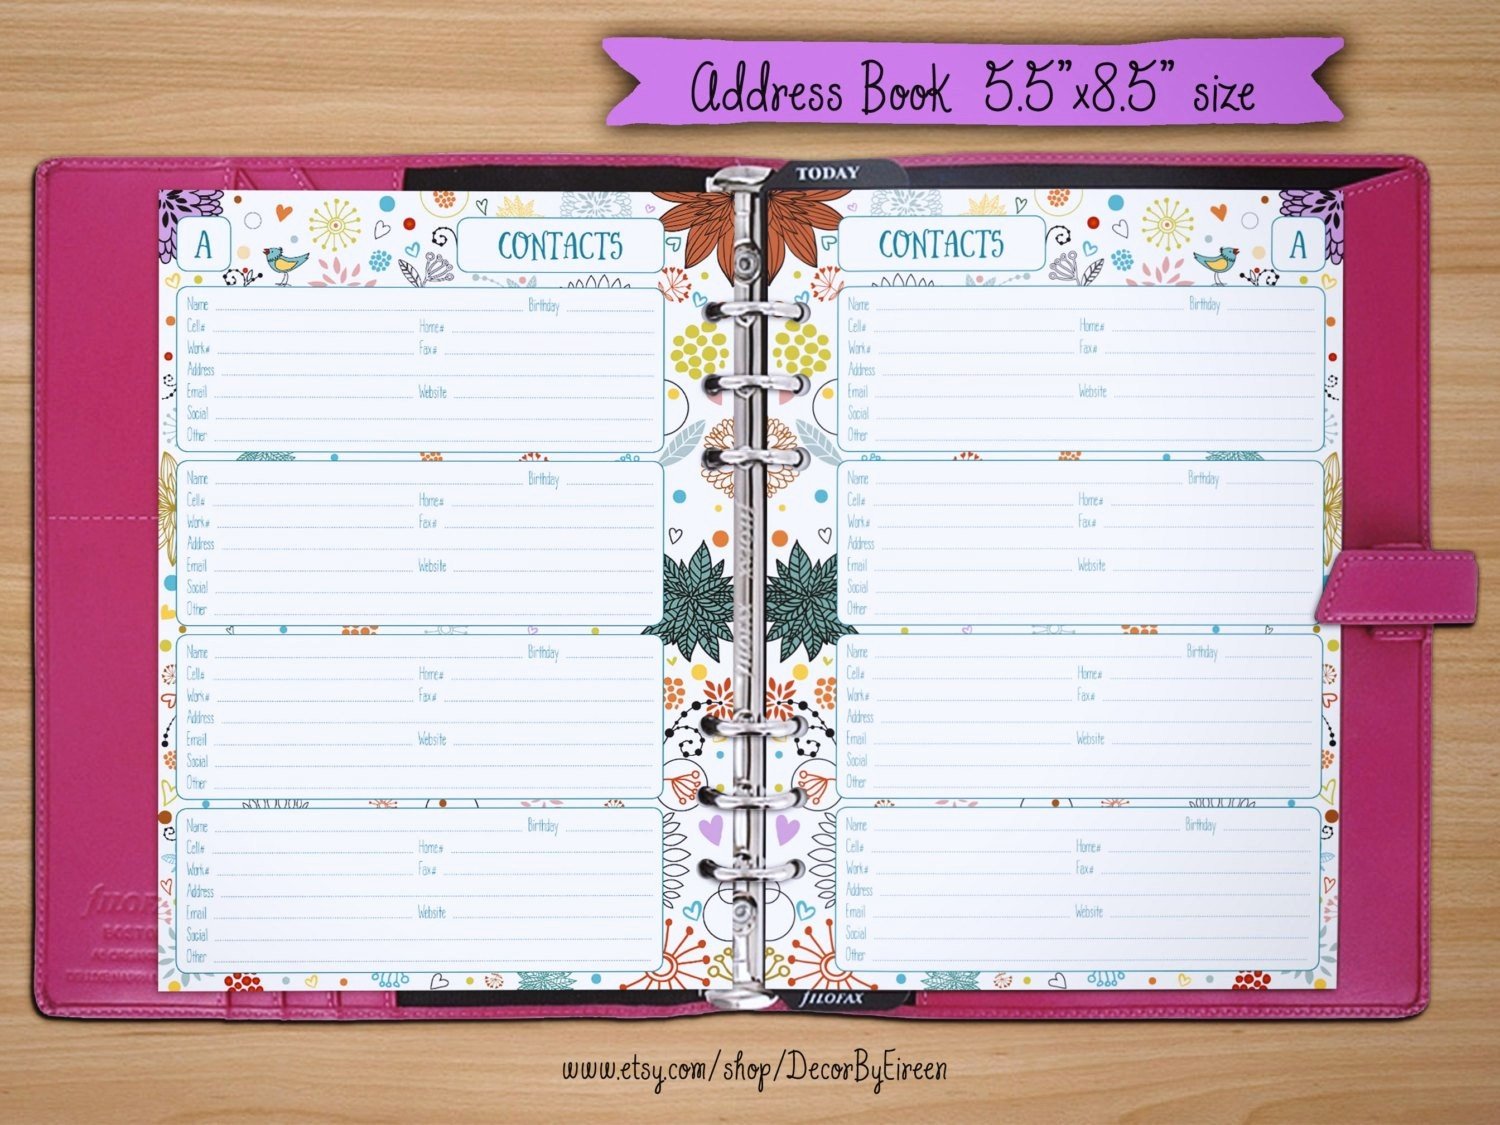 Free Printable Address Book Pages New Address Book Pages Printable Contact Sheets 5 5x8 5 Half